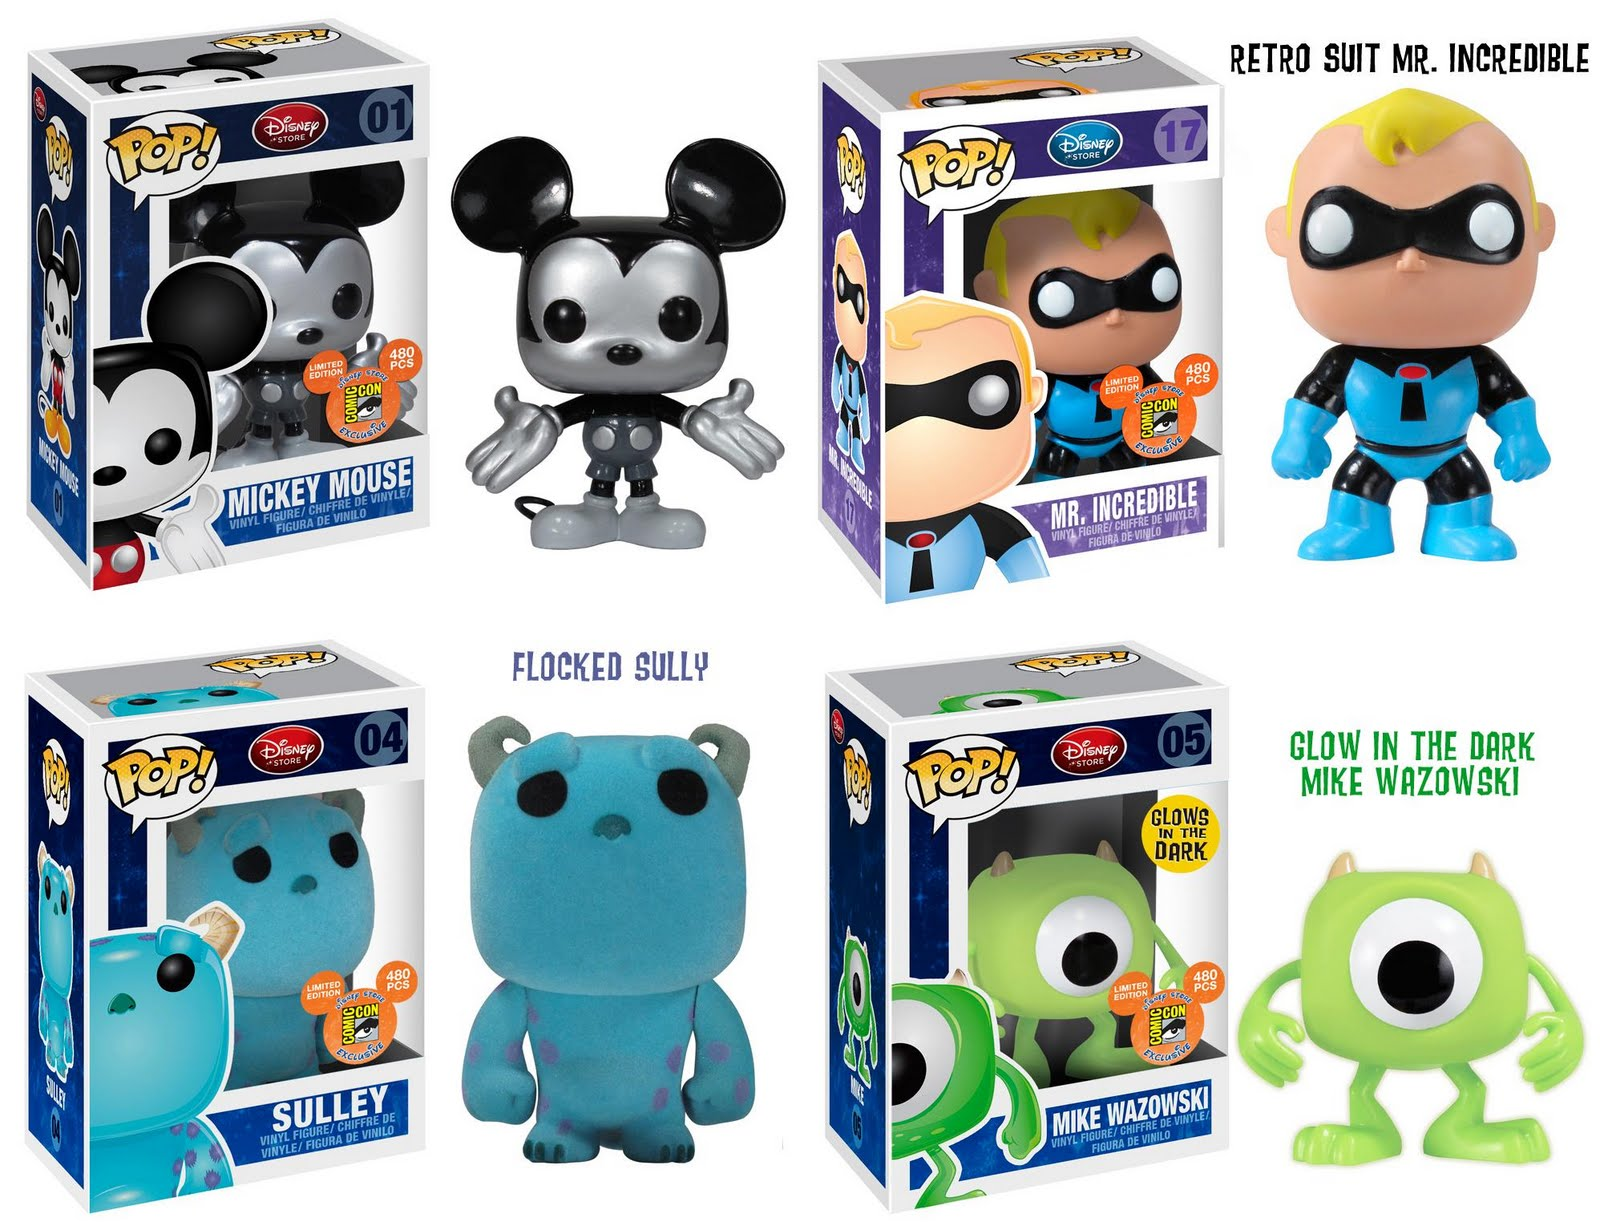 http://2.bp.blogspot.com/-dKppqyjrnZE/UGCEJwoD_yI/AAAAAAAAQ_Q/yyGLIFOuVoY/s1600/San+Diego+Comic-Con+2011+Exclusive+Pop!+Disney+Vinyl+Figures+-+Metallic+Mono+Mickey+Mouse,+Retro+Suit+Mr.+Incredible,+Flocked+Sully+&+GID+Mike+Wazowski.jpg